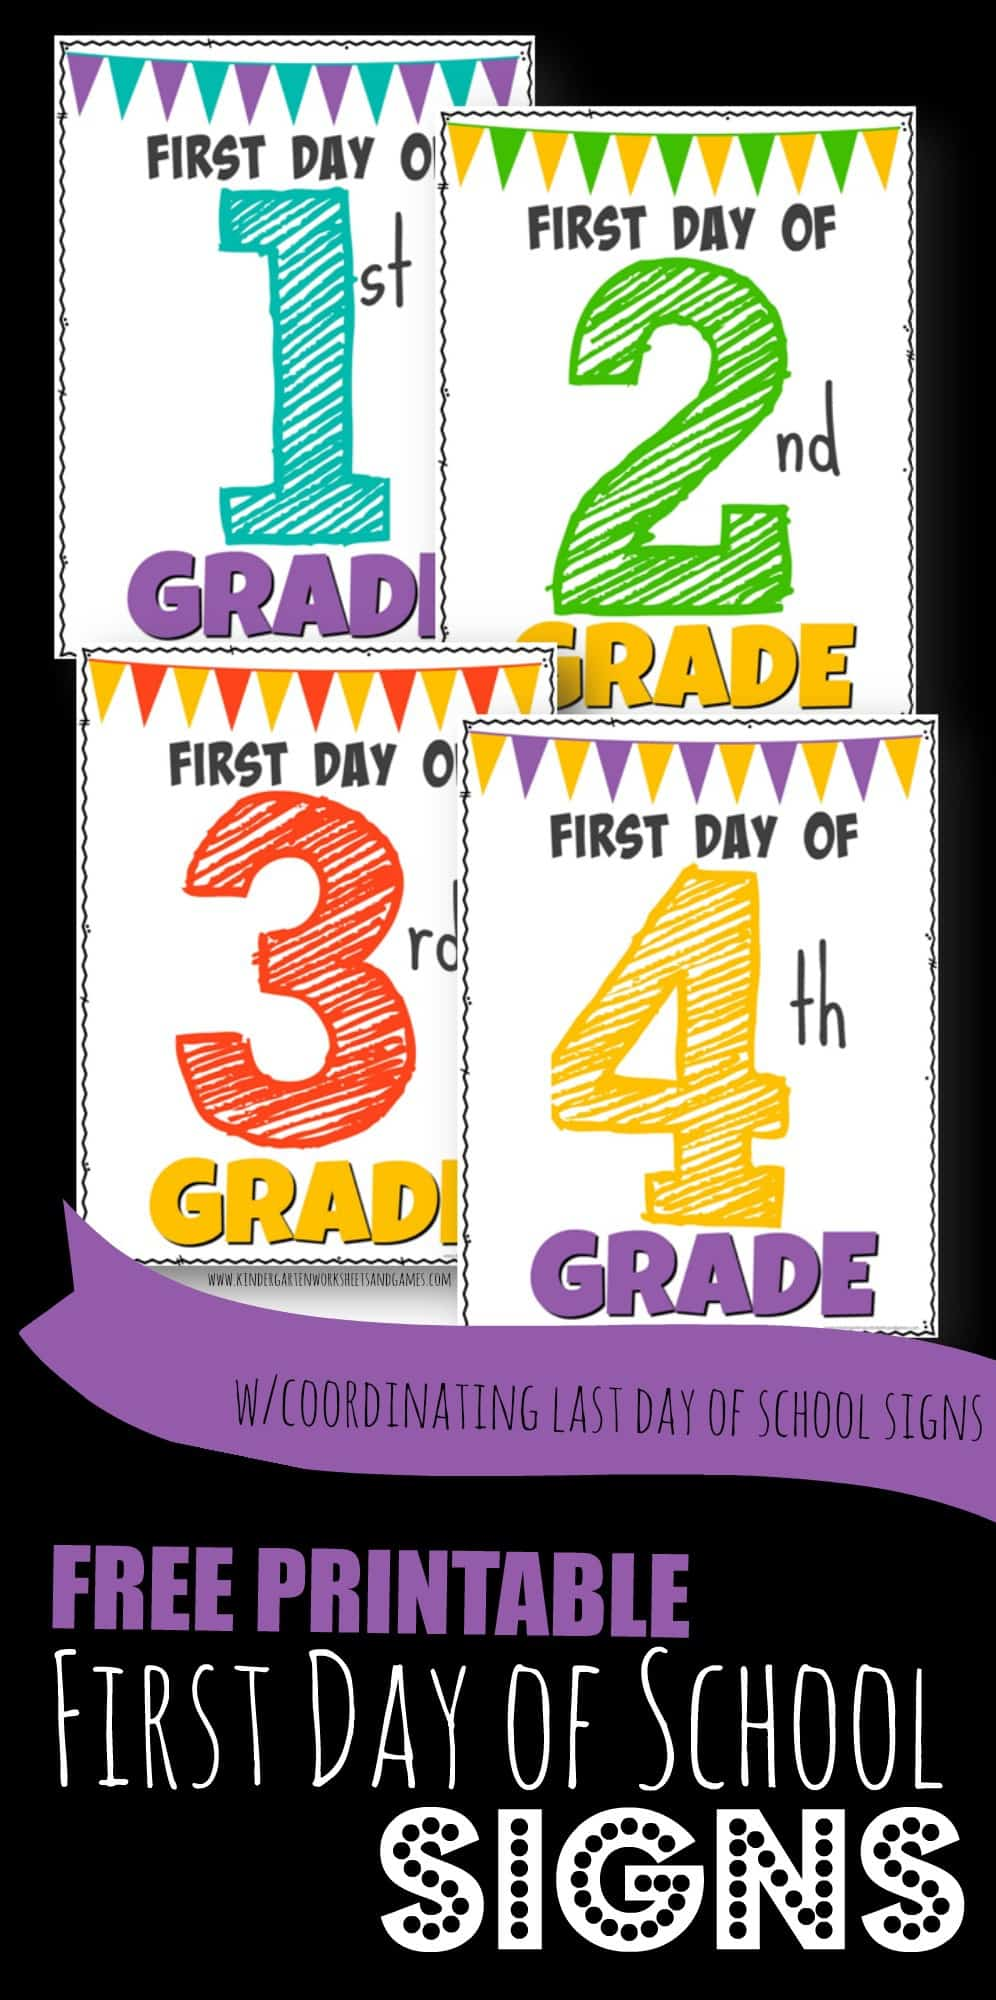 medium resolution of FREE Printable First Day of School Signs